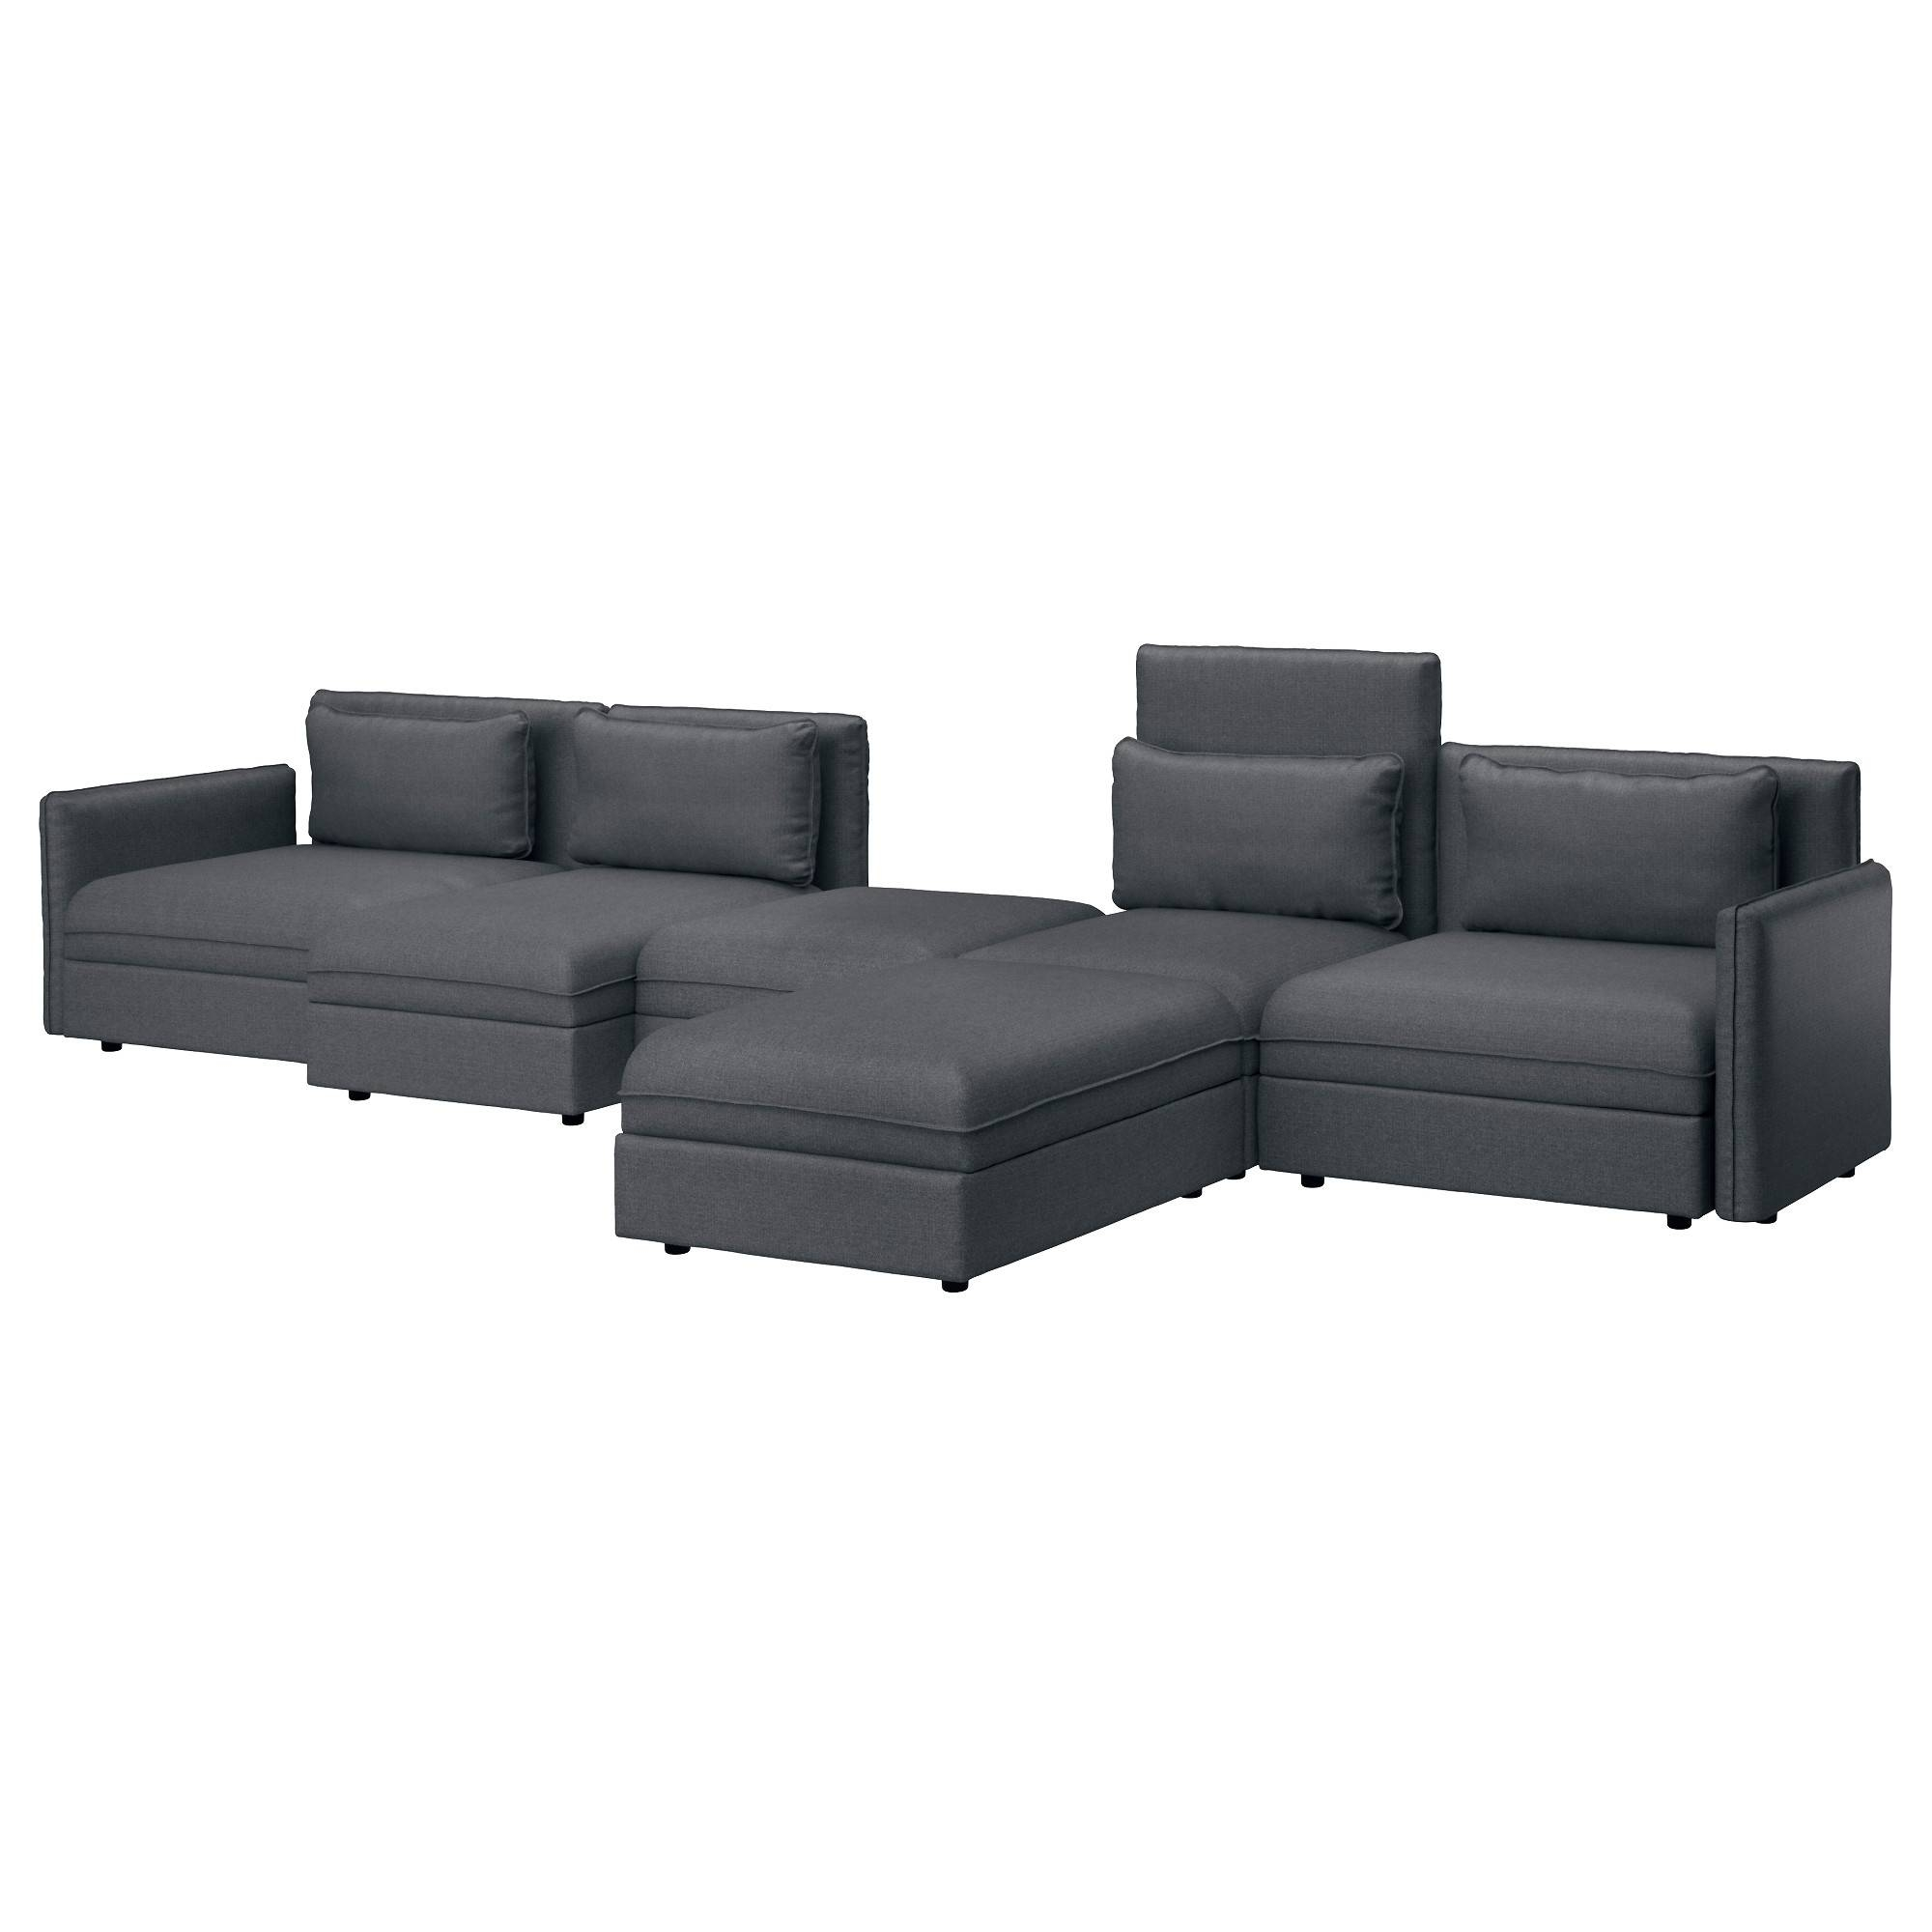 Www.ikea/piaimages/0404278_Pe588662_S5 within Compact Sectional Sofas (Image 24 of 30)